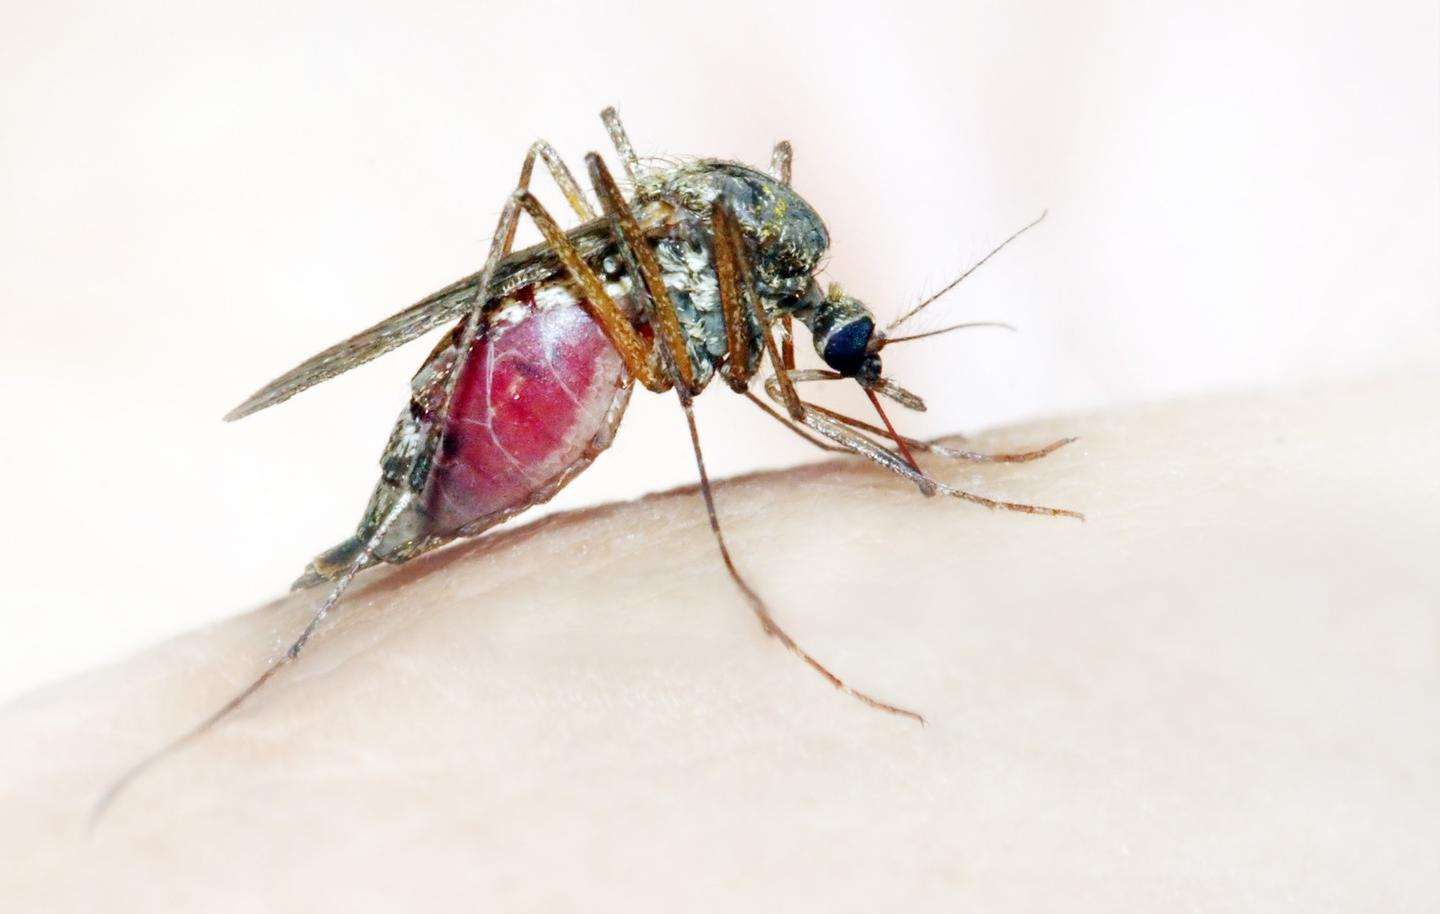 An Anopheles mosquito, which is known to spread malaria